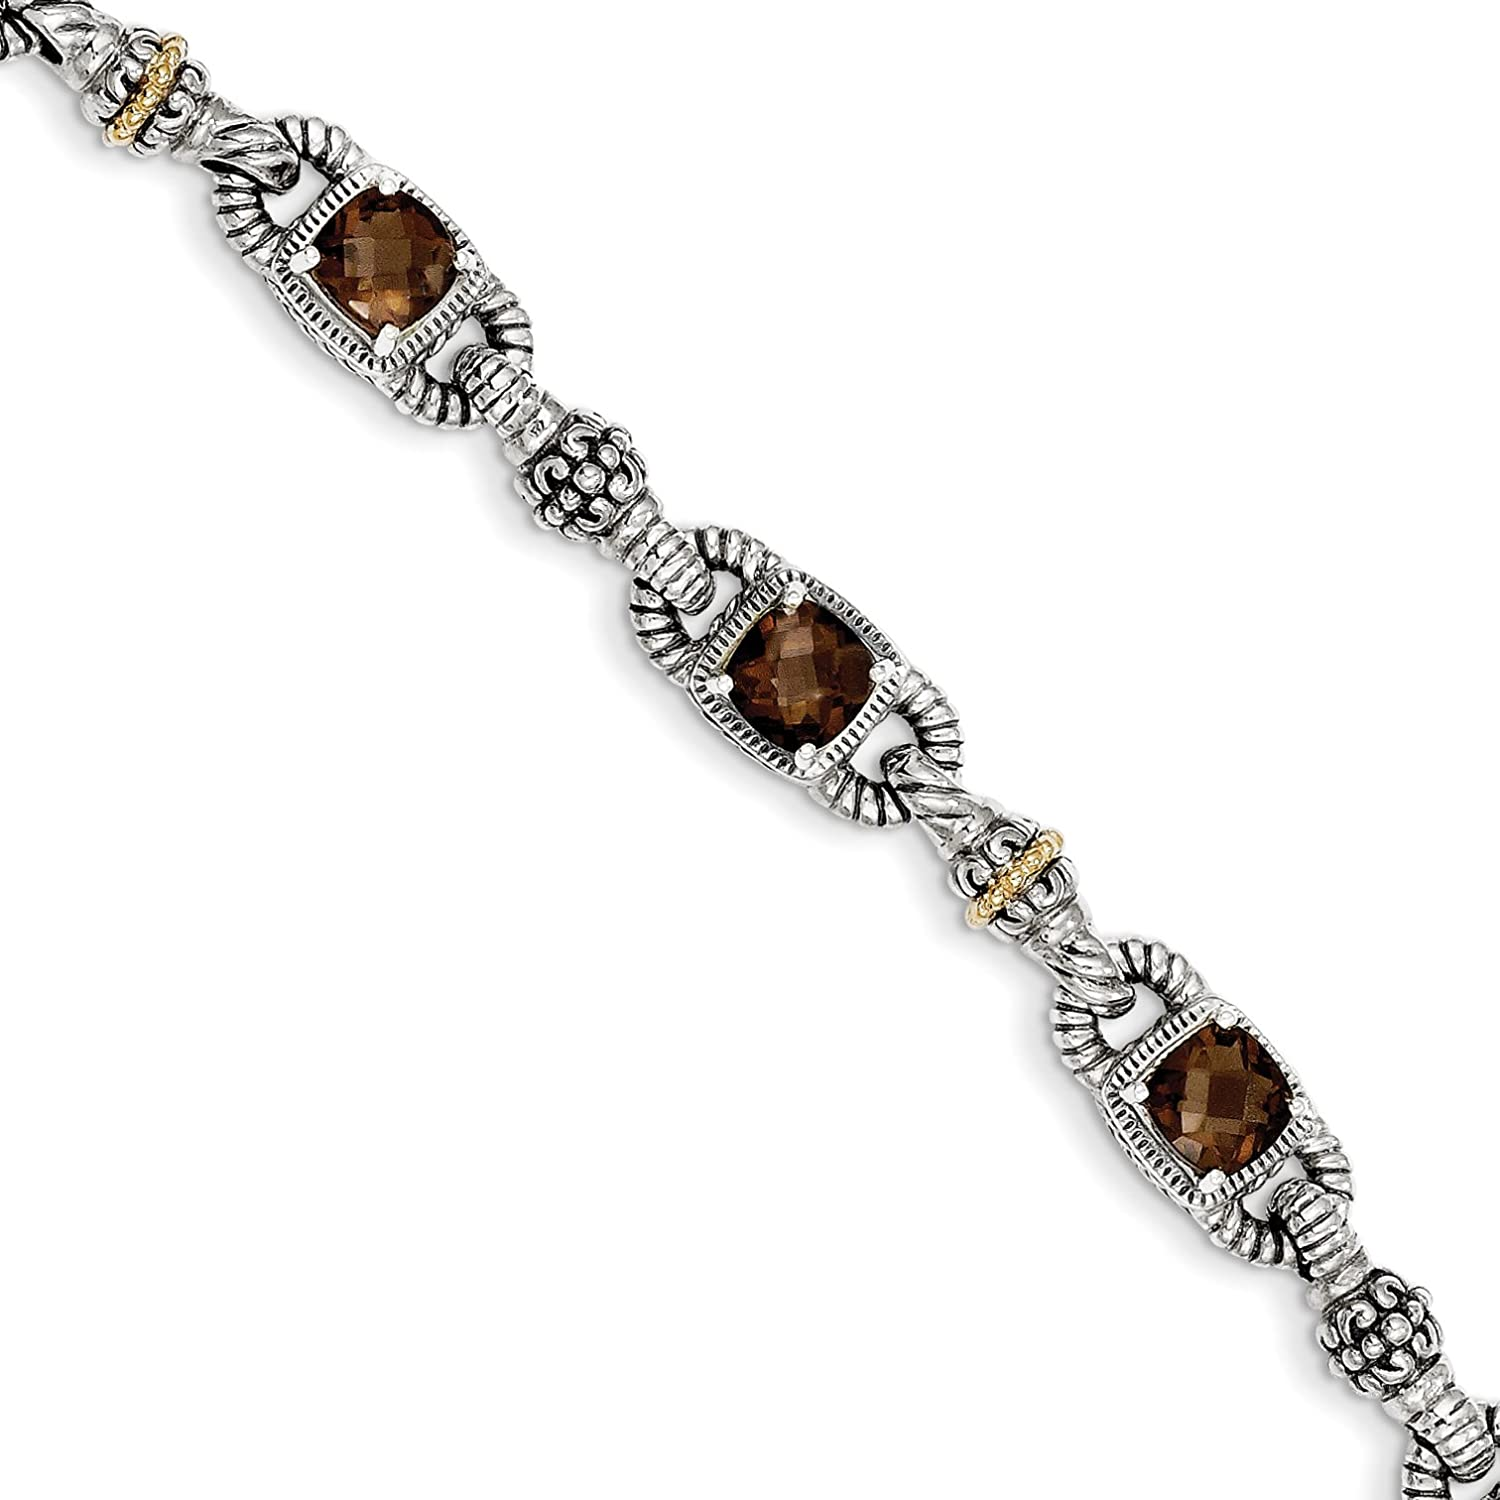 14k gold and Sterling Silver Smoky Quartz Bracelet